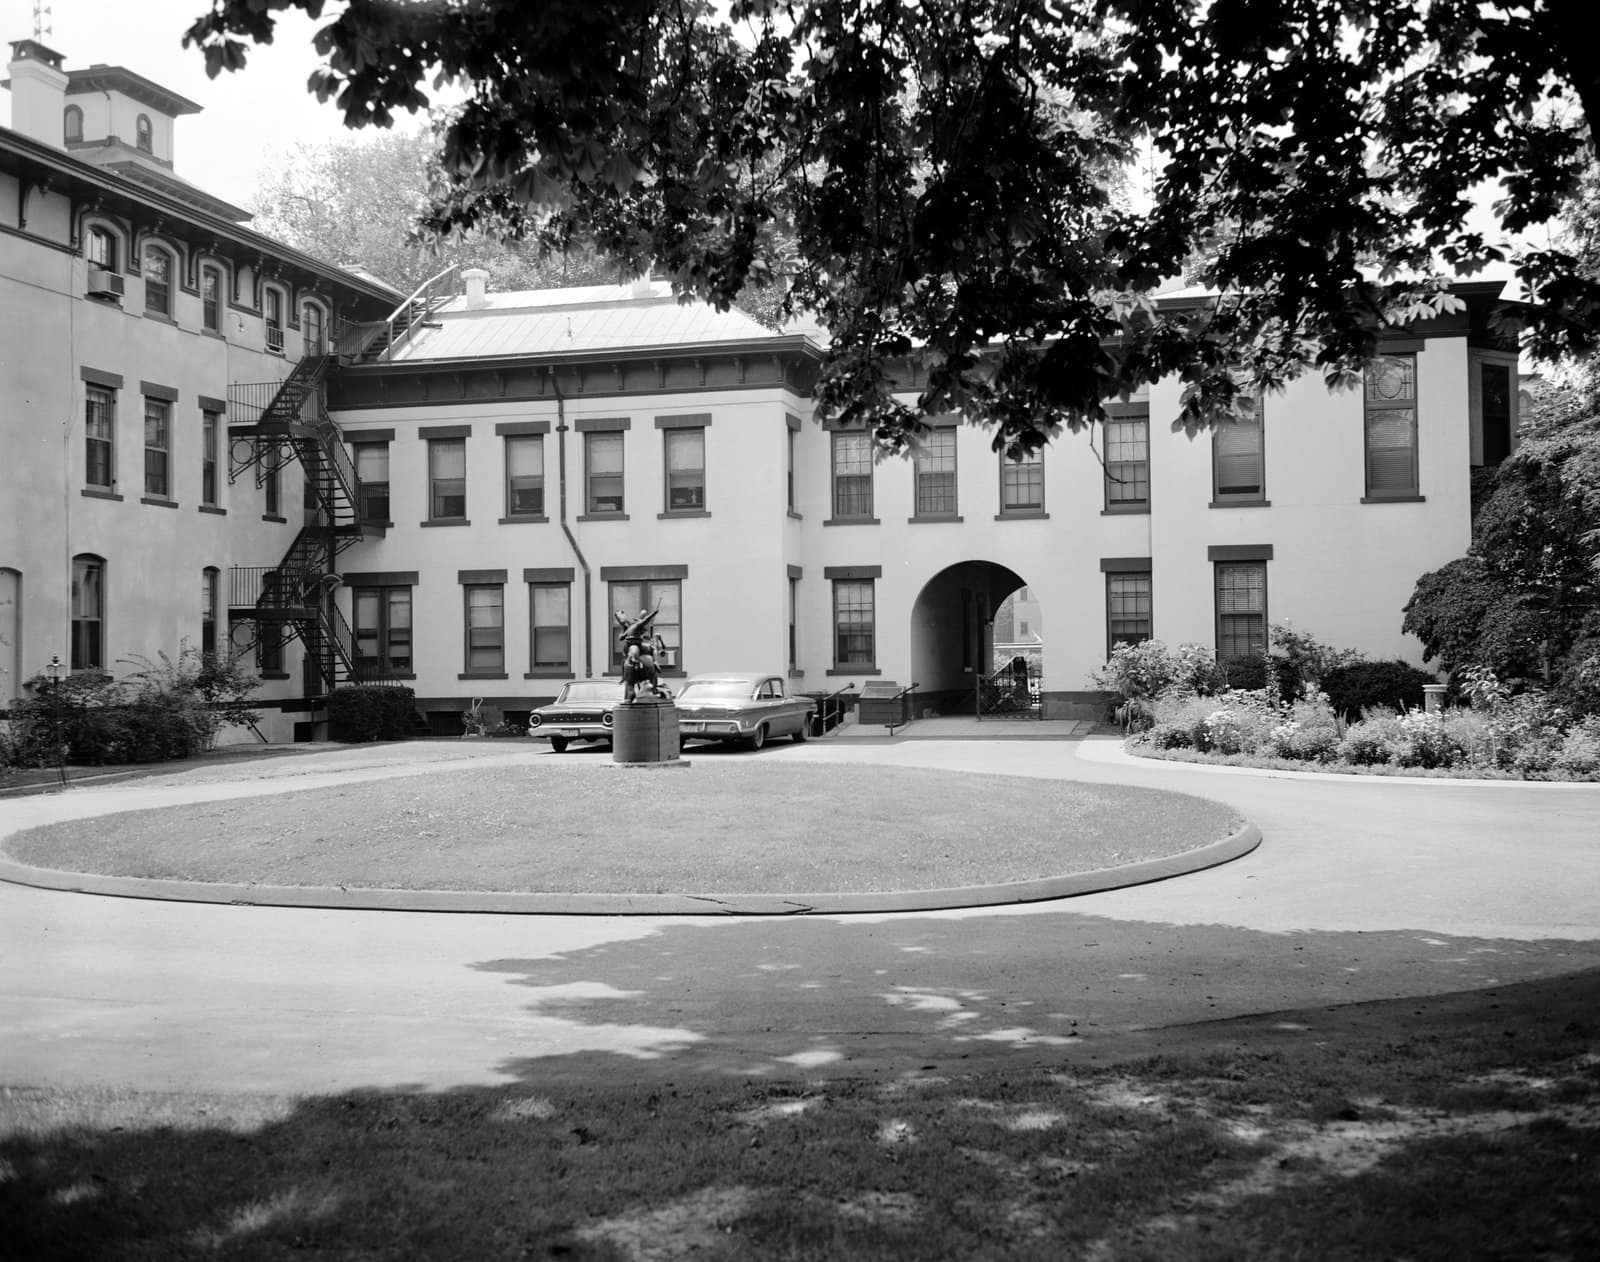 Armsmear - Colt mansion seen in the 1960s (2)